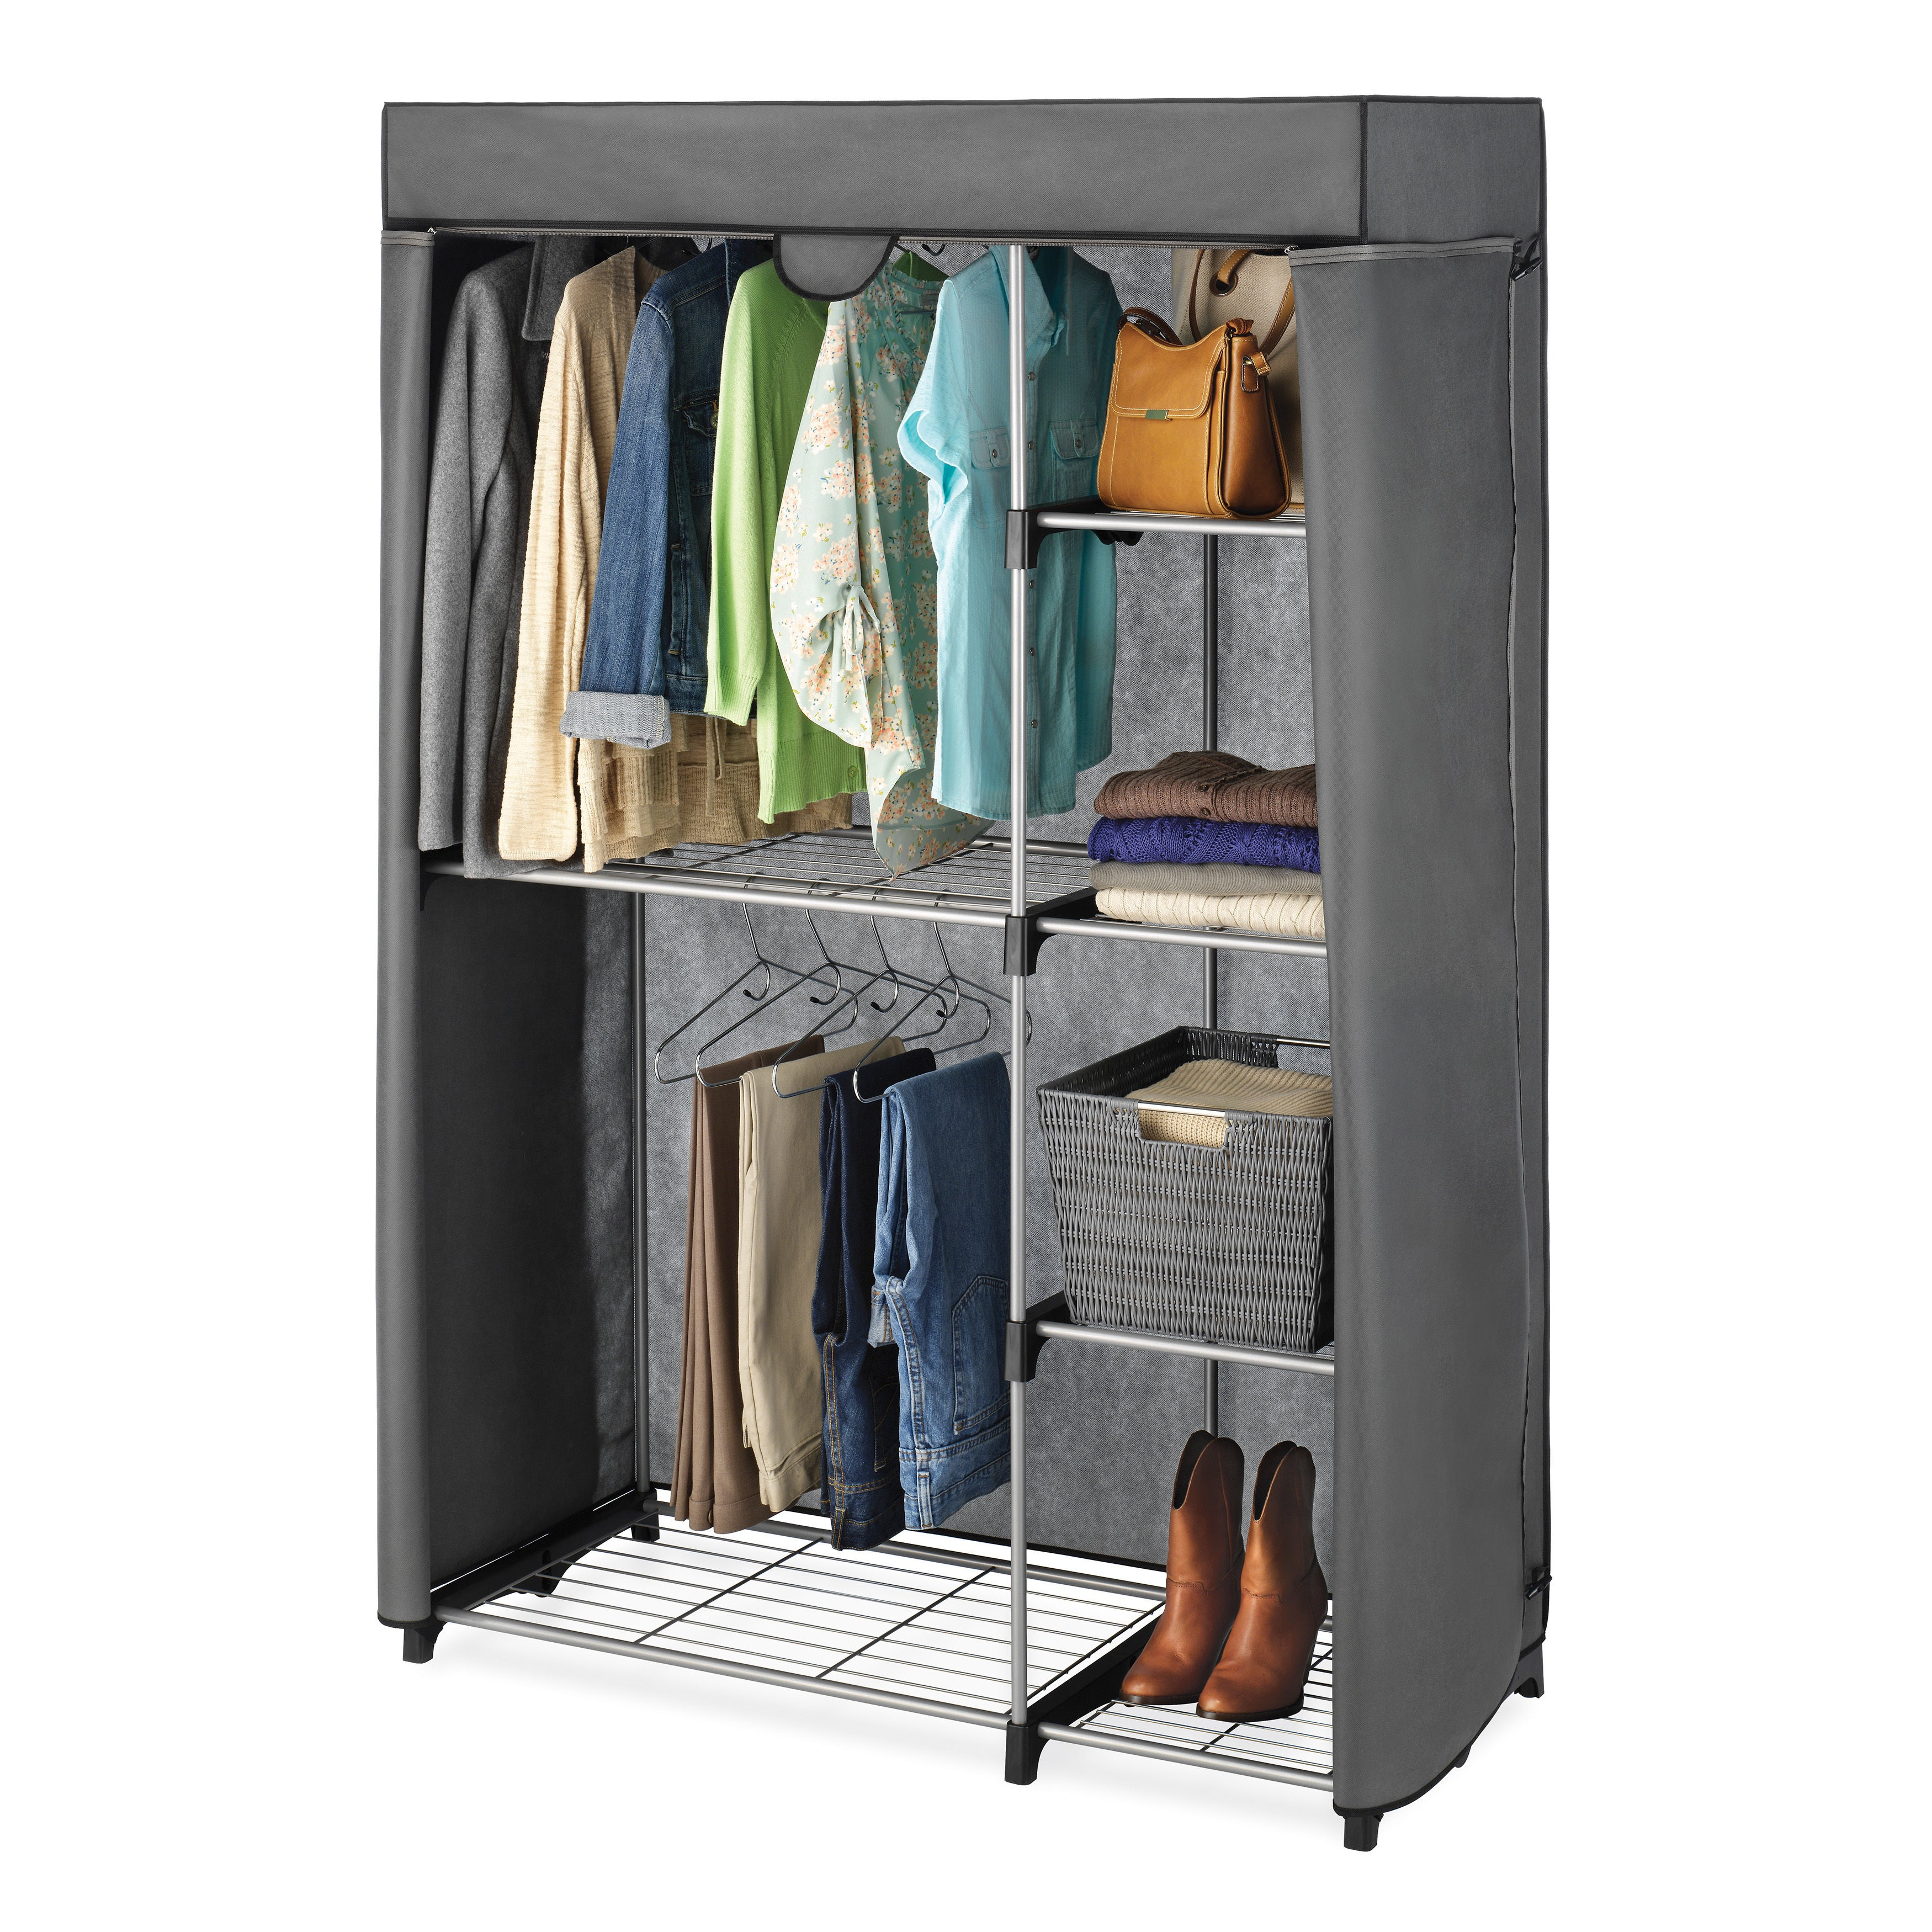 Shop Double Rod Closet Cover Overstock 9068150